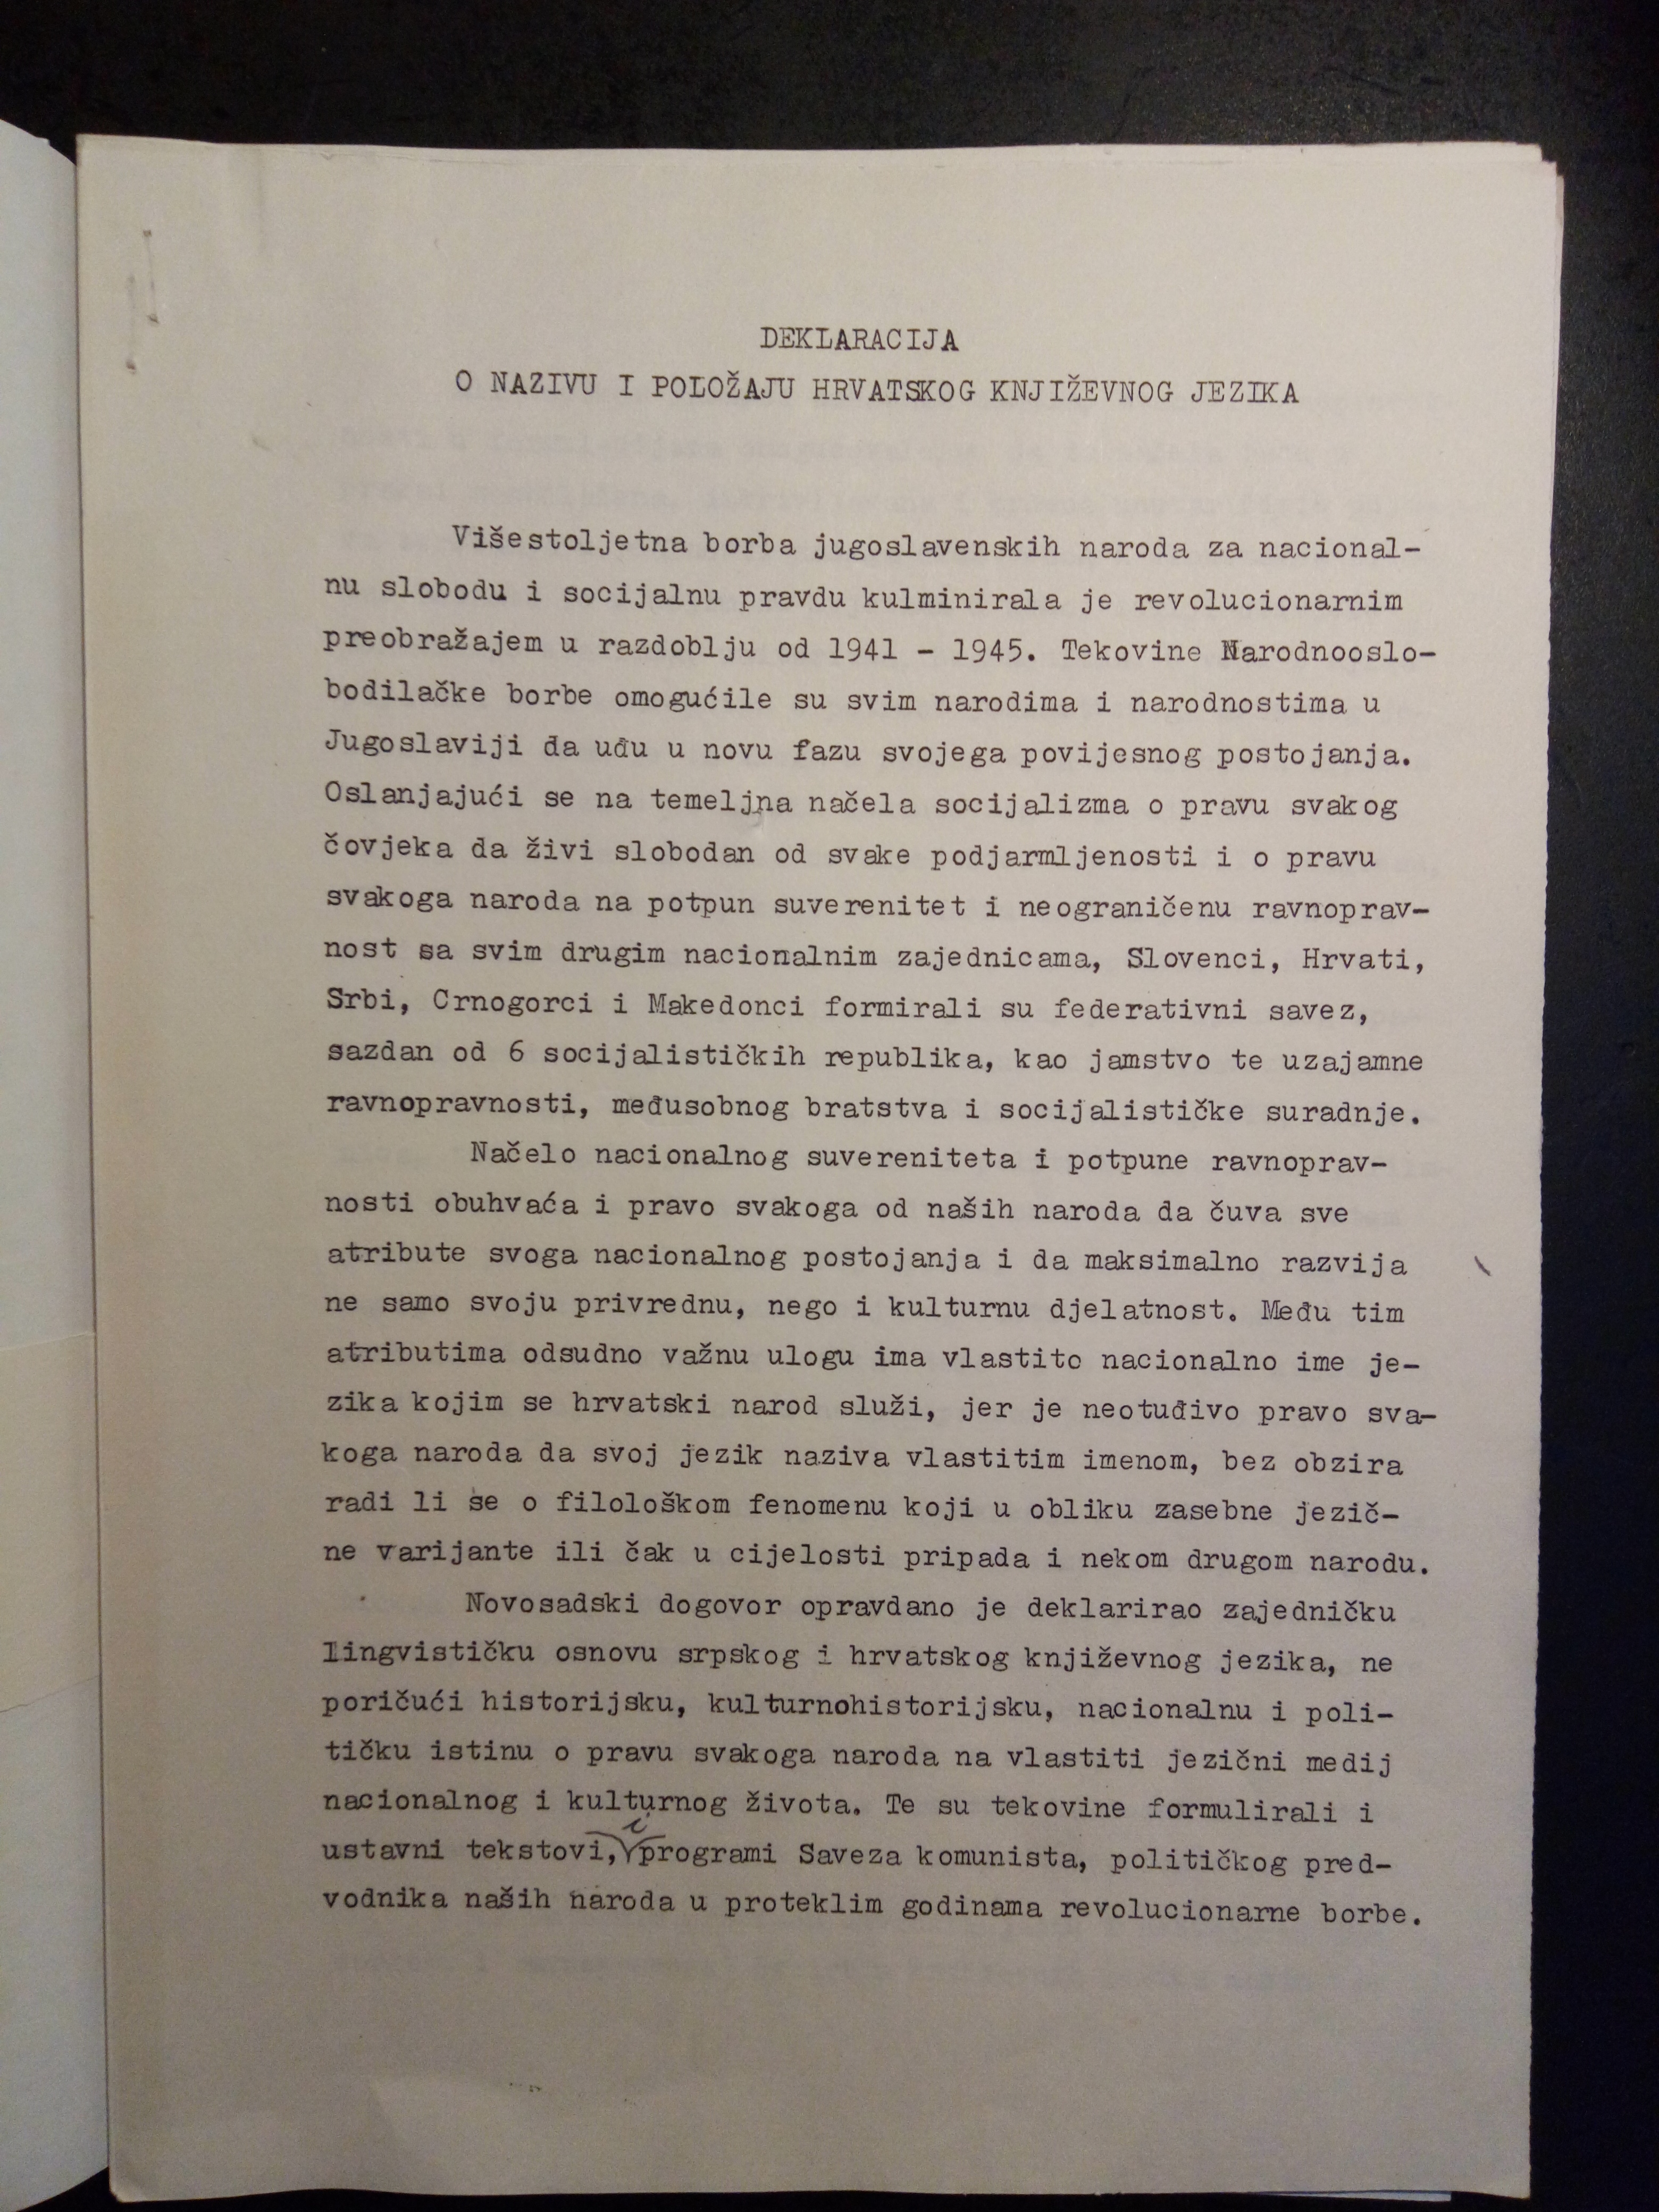 Declaration on the Name and Status of Croatian Language, 1967. Typescript.Matica hrvatska Collection, Croatian State Archives